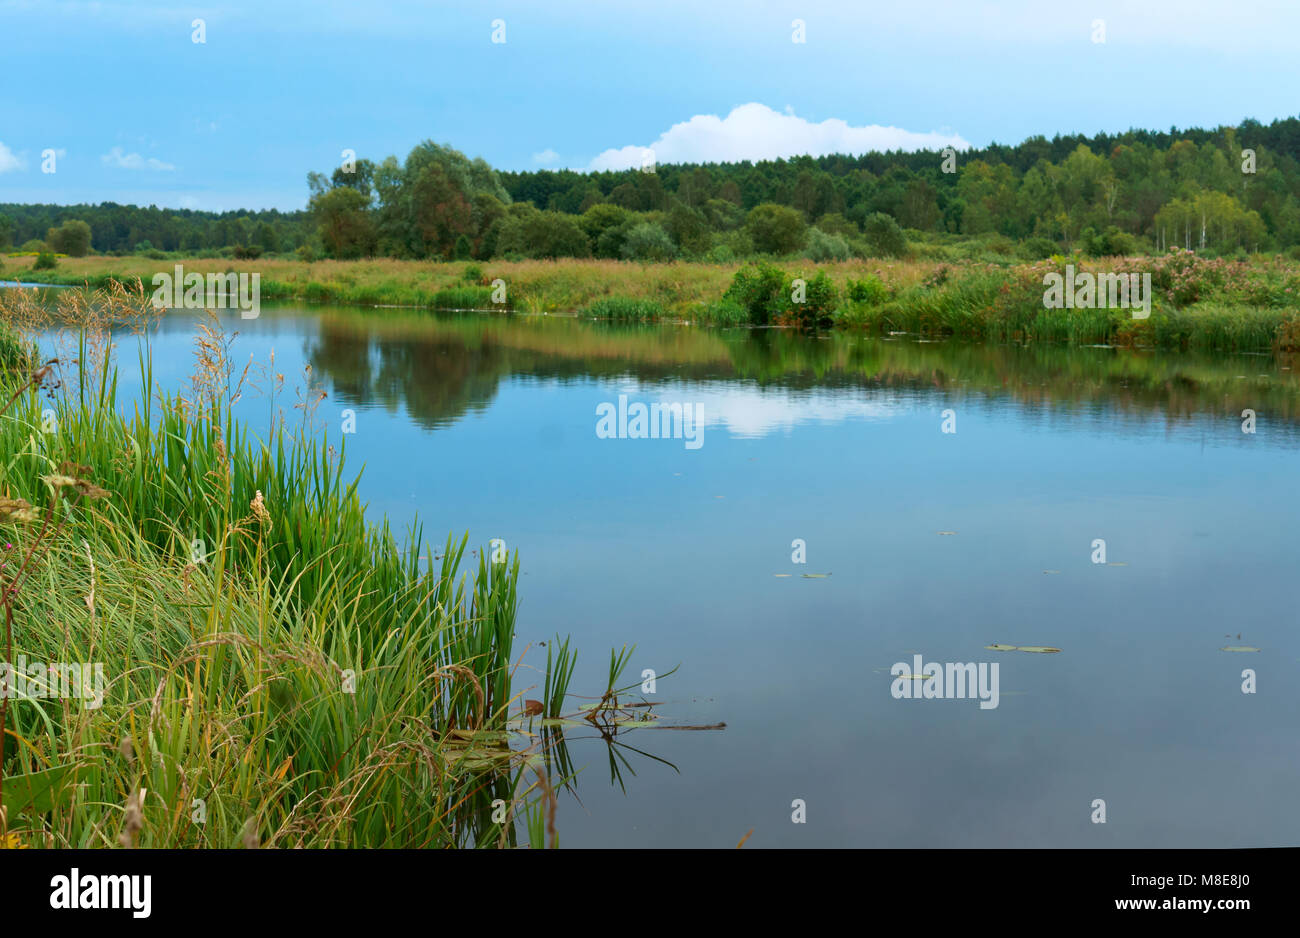 smooth channel with reflection of the sky, long river with overgrown green banks, artificial pond - Stock Image